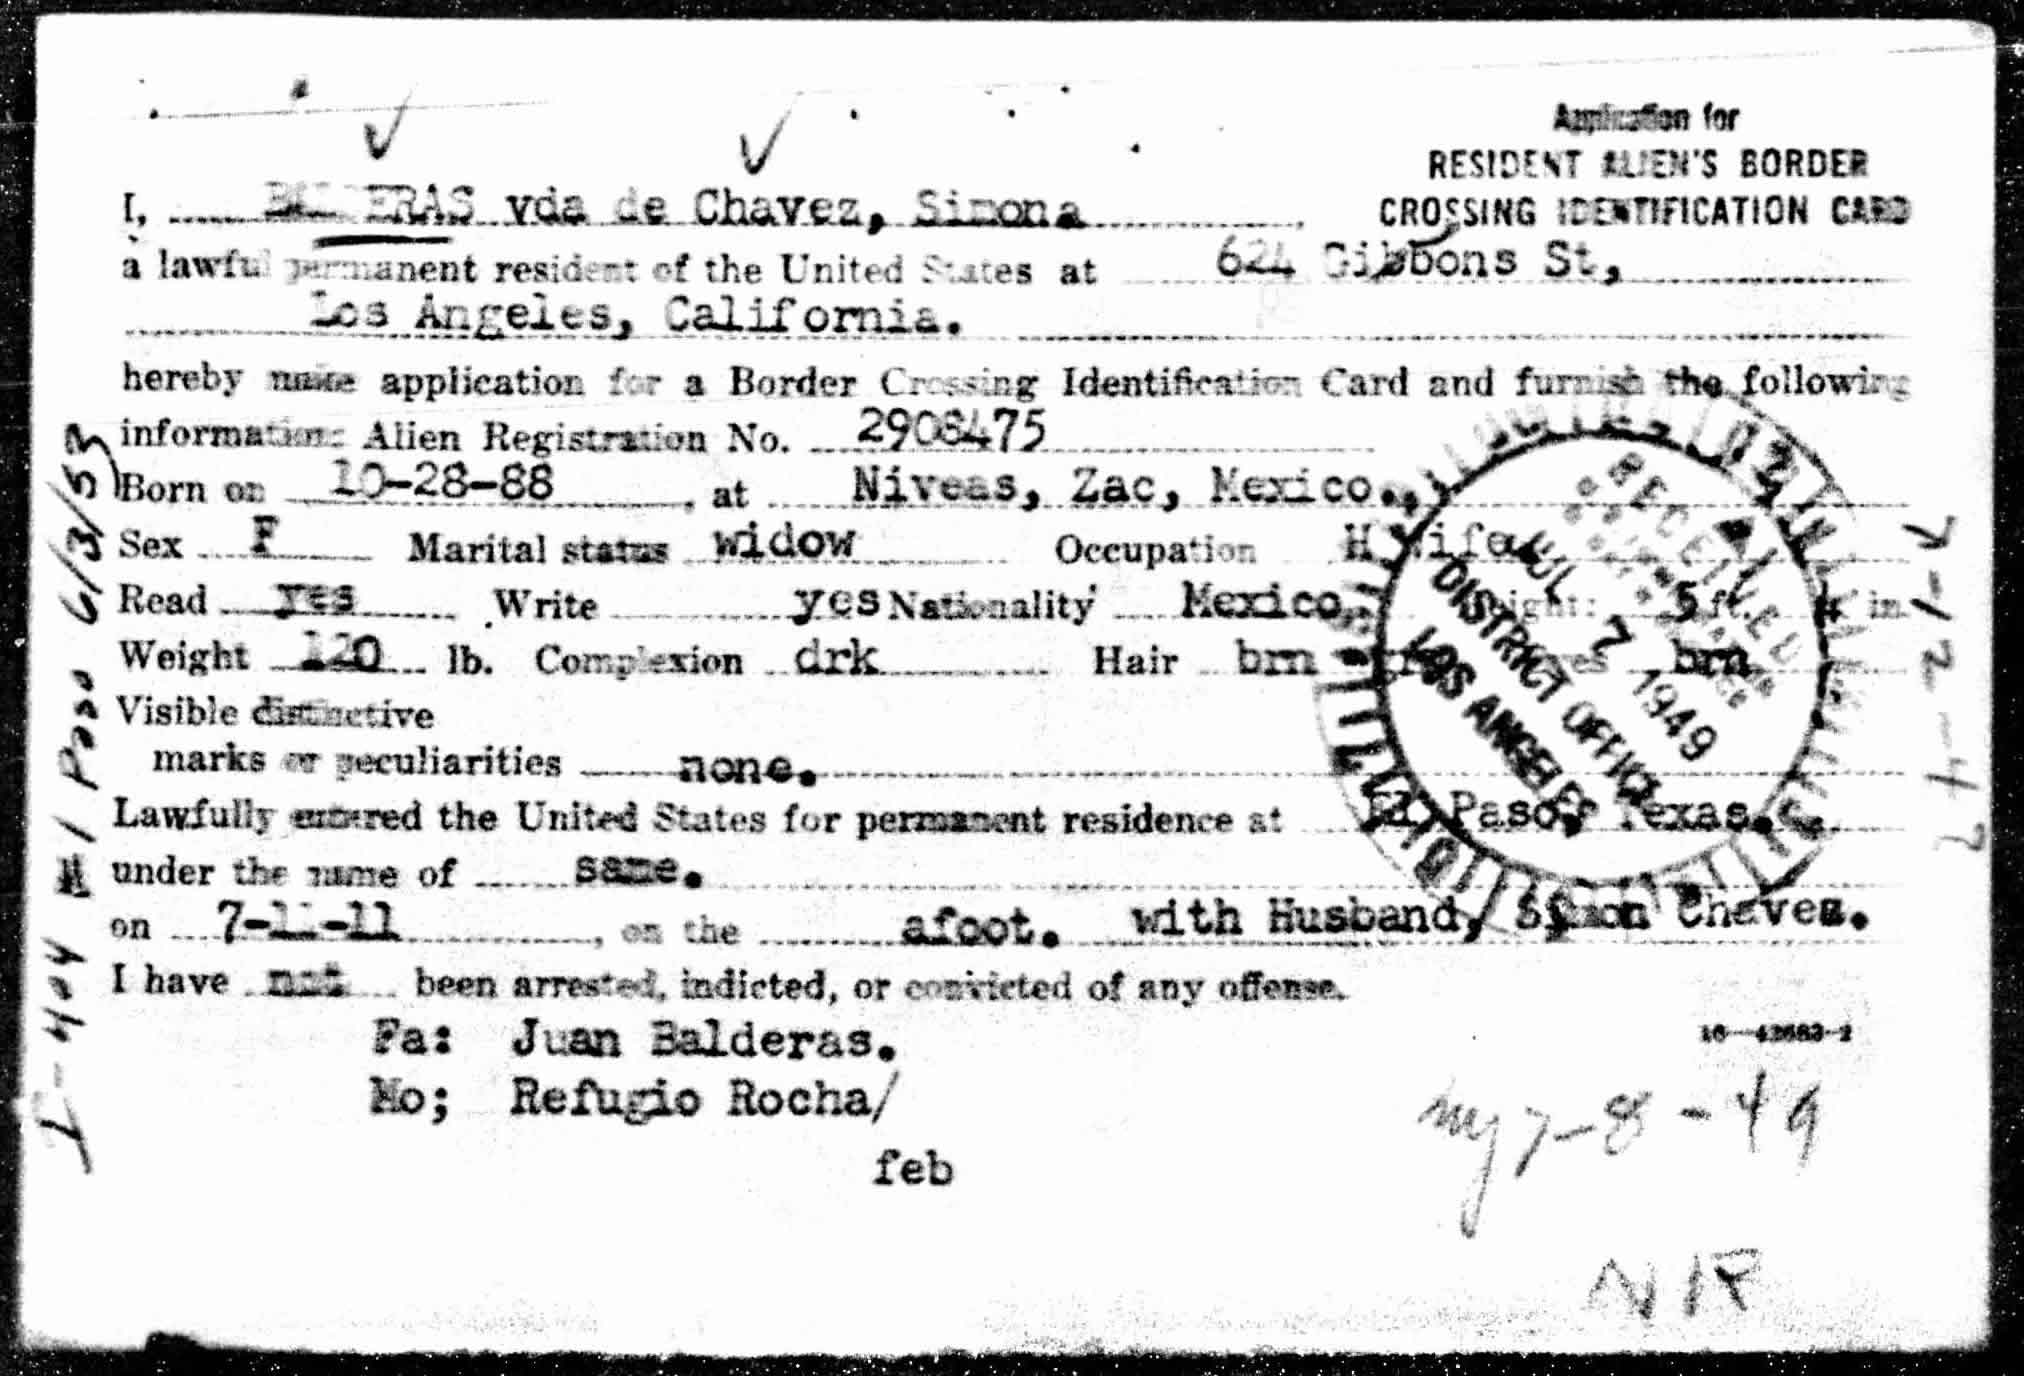 1949 Resident Alien's Border Crossing Identification Card for Simona Chávez